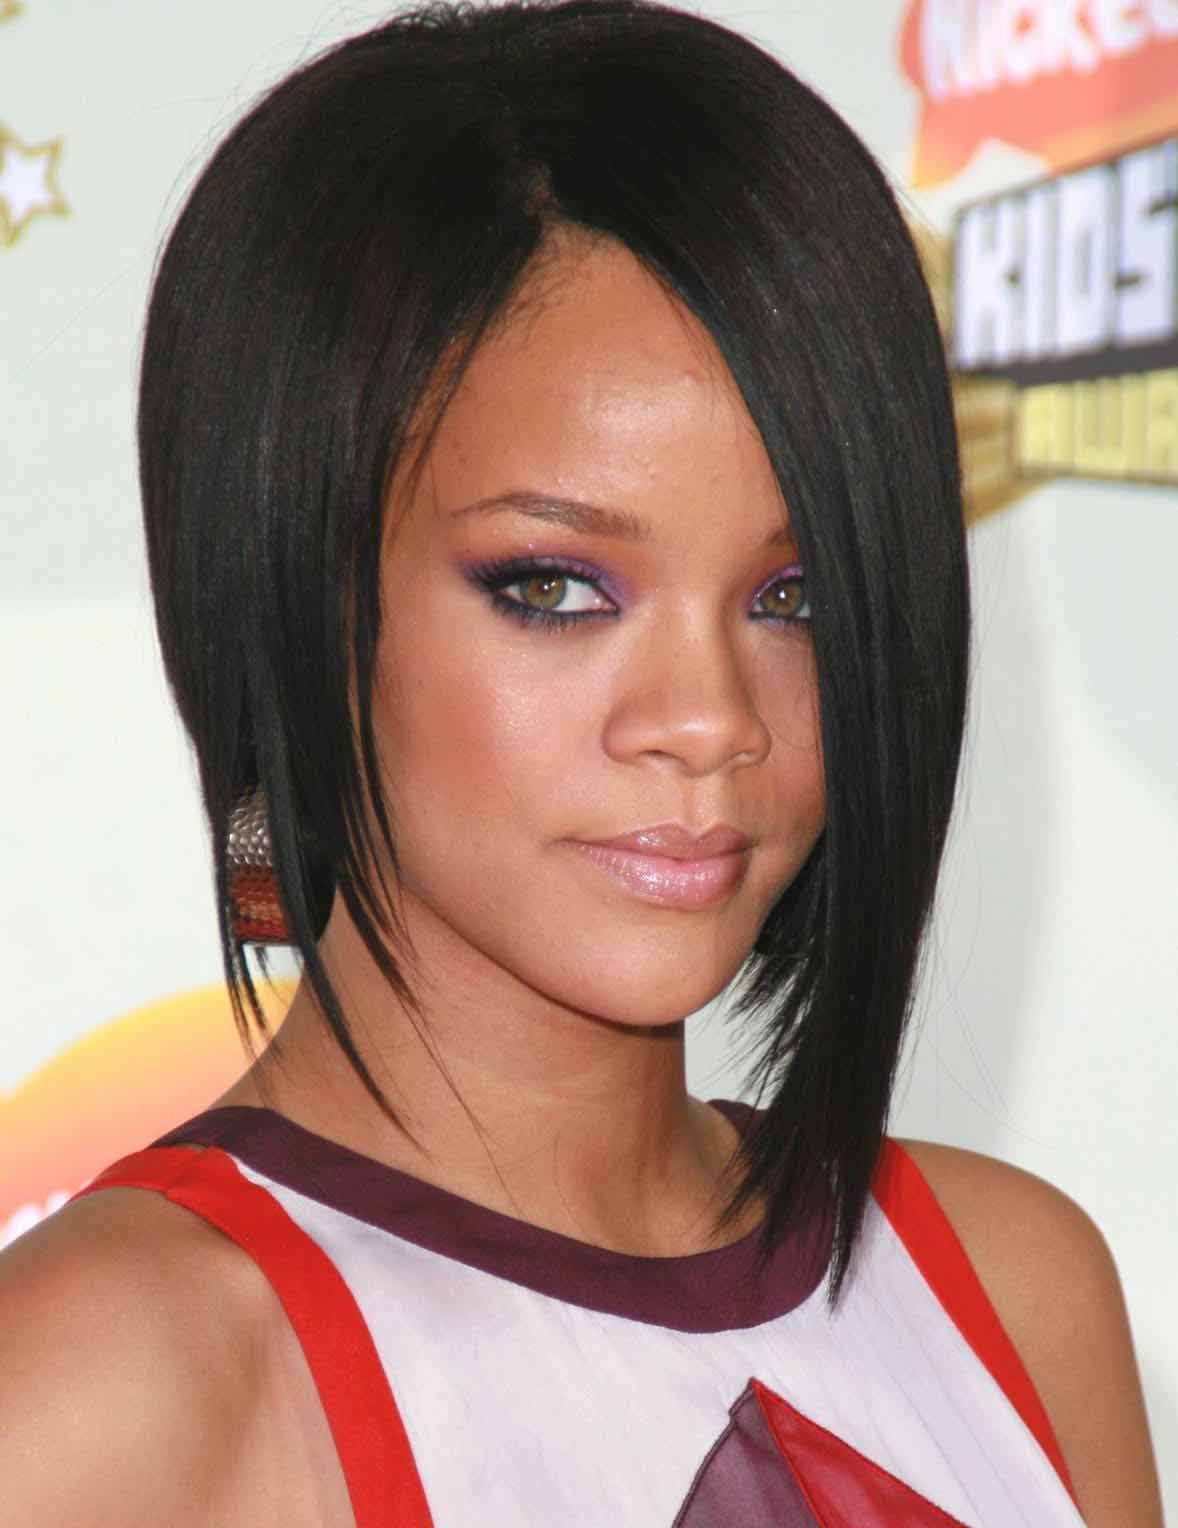 Swell Best Hairstyles For Big Foreheads Short Hairstyles For Black Women Fulllsitofus